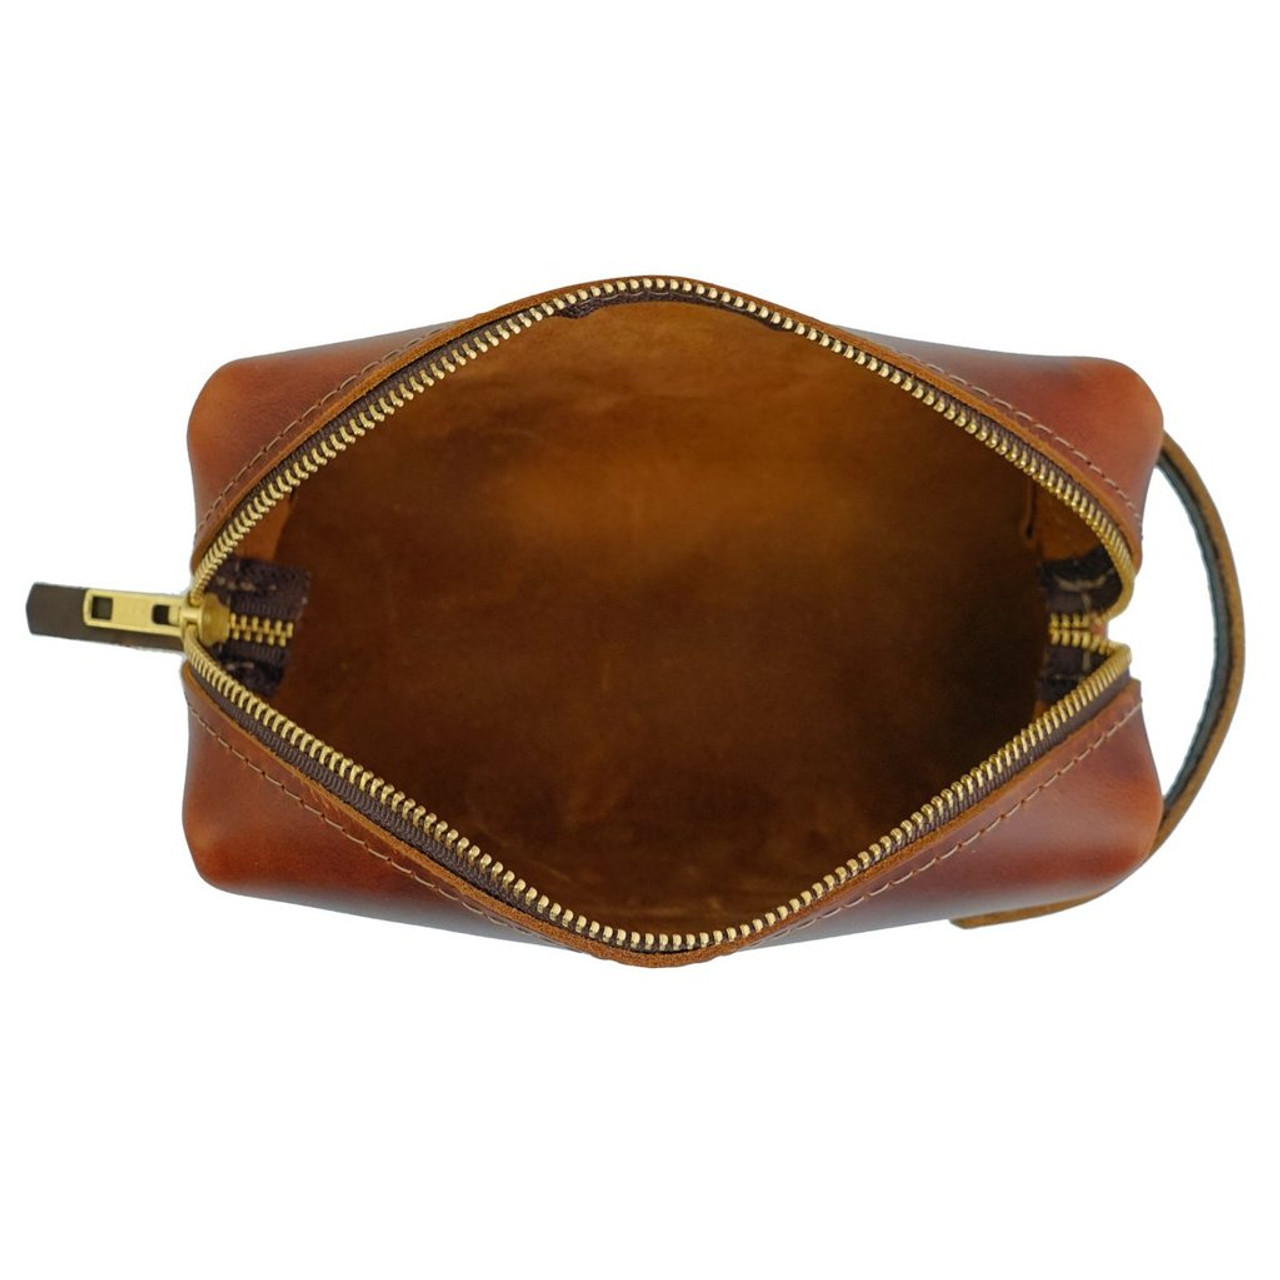 Large Leather Pouch - Saddle - High Line by Rustico - inside view